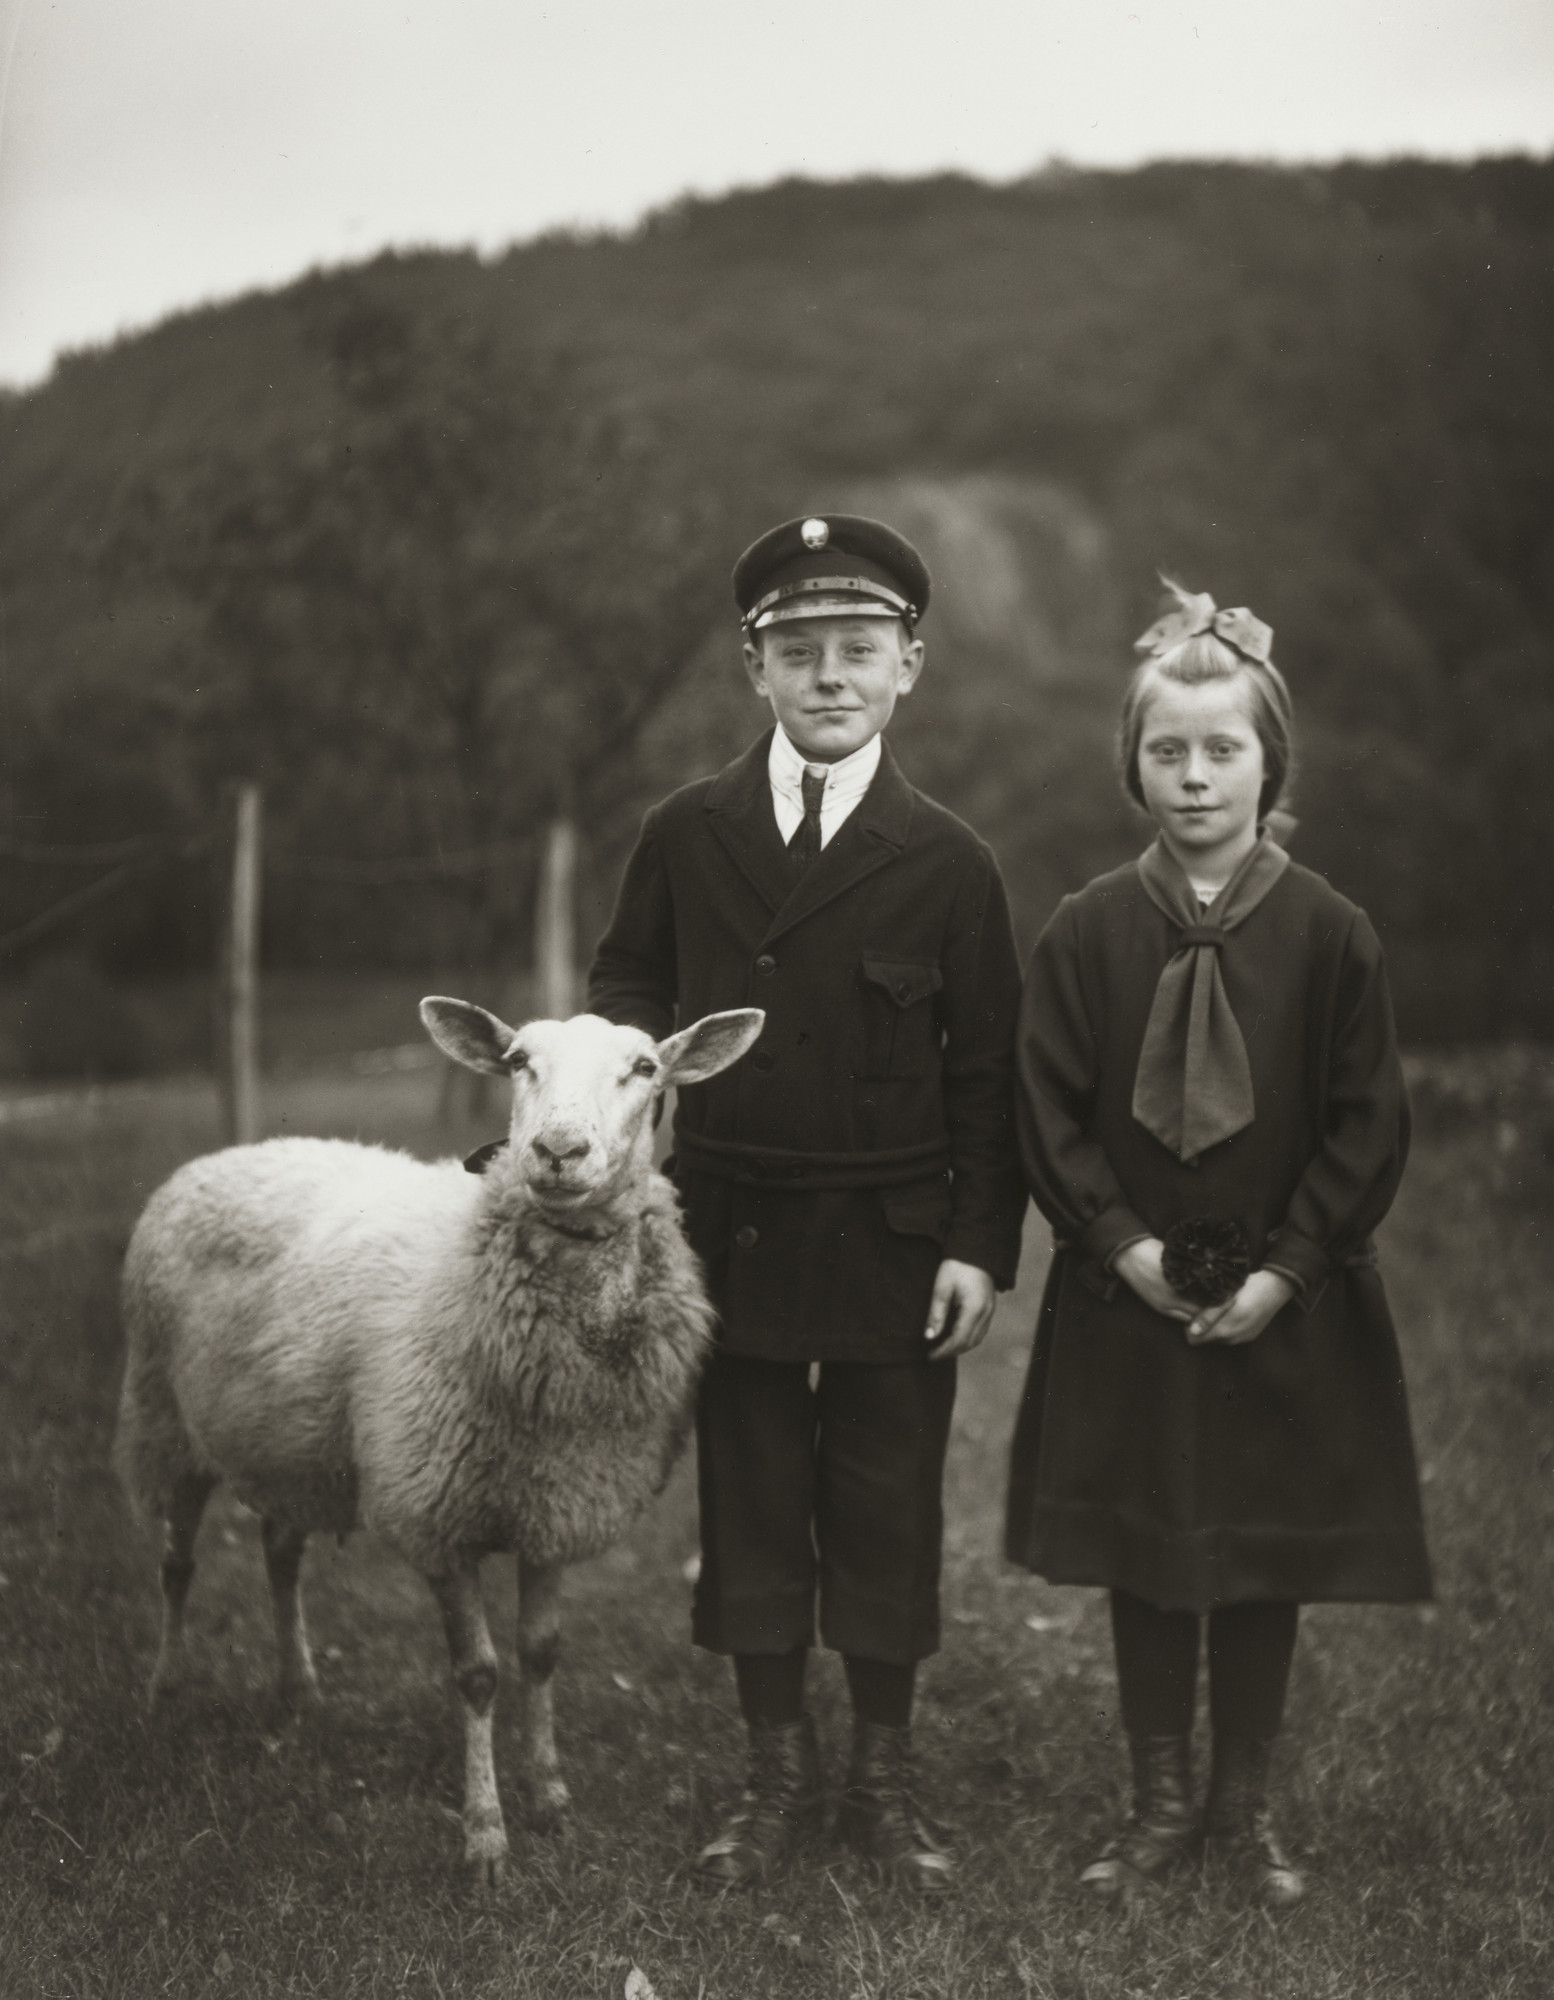 August Sander. Farm Children. 1927